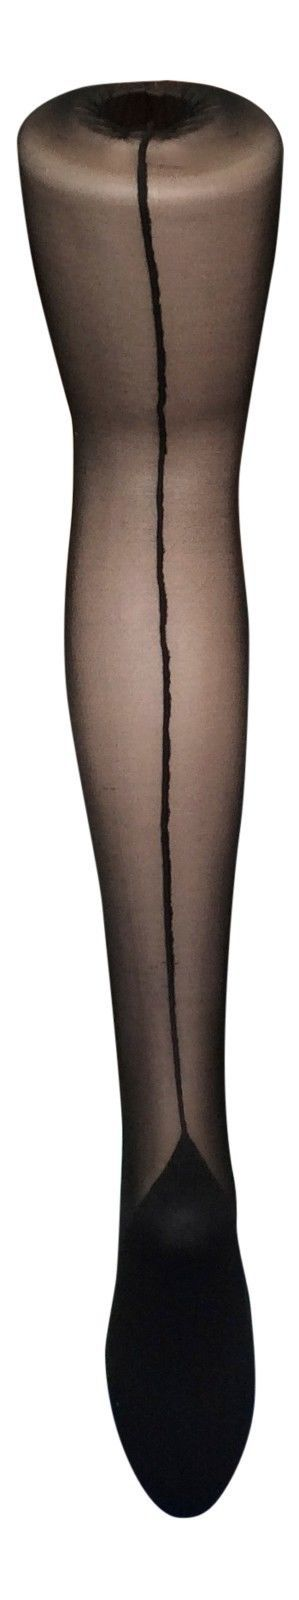 Sock Snob Retro Back Seam Designer Tights One size 18-24 uk, 46-52 eur Blacks XL